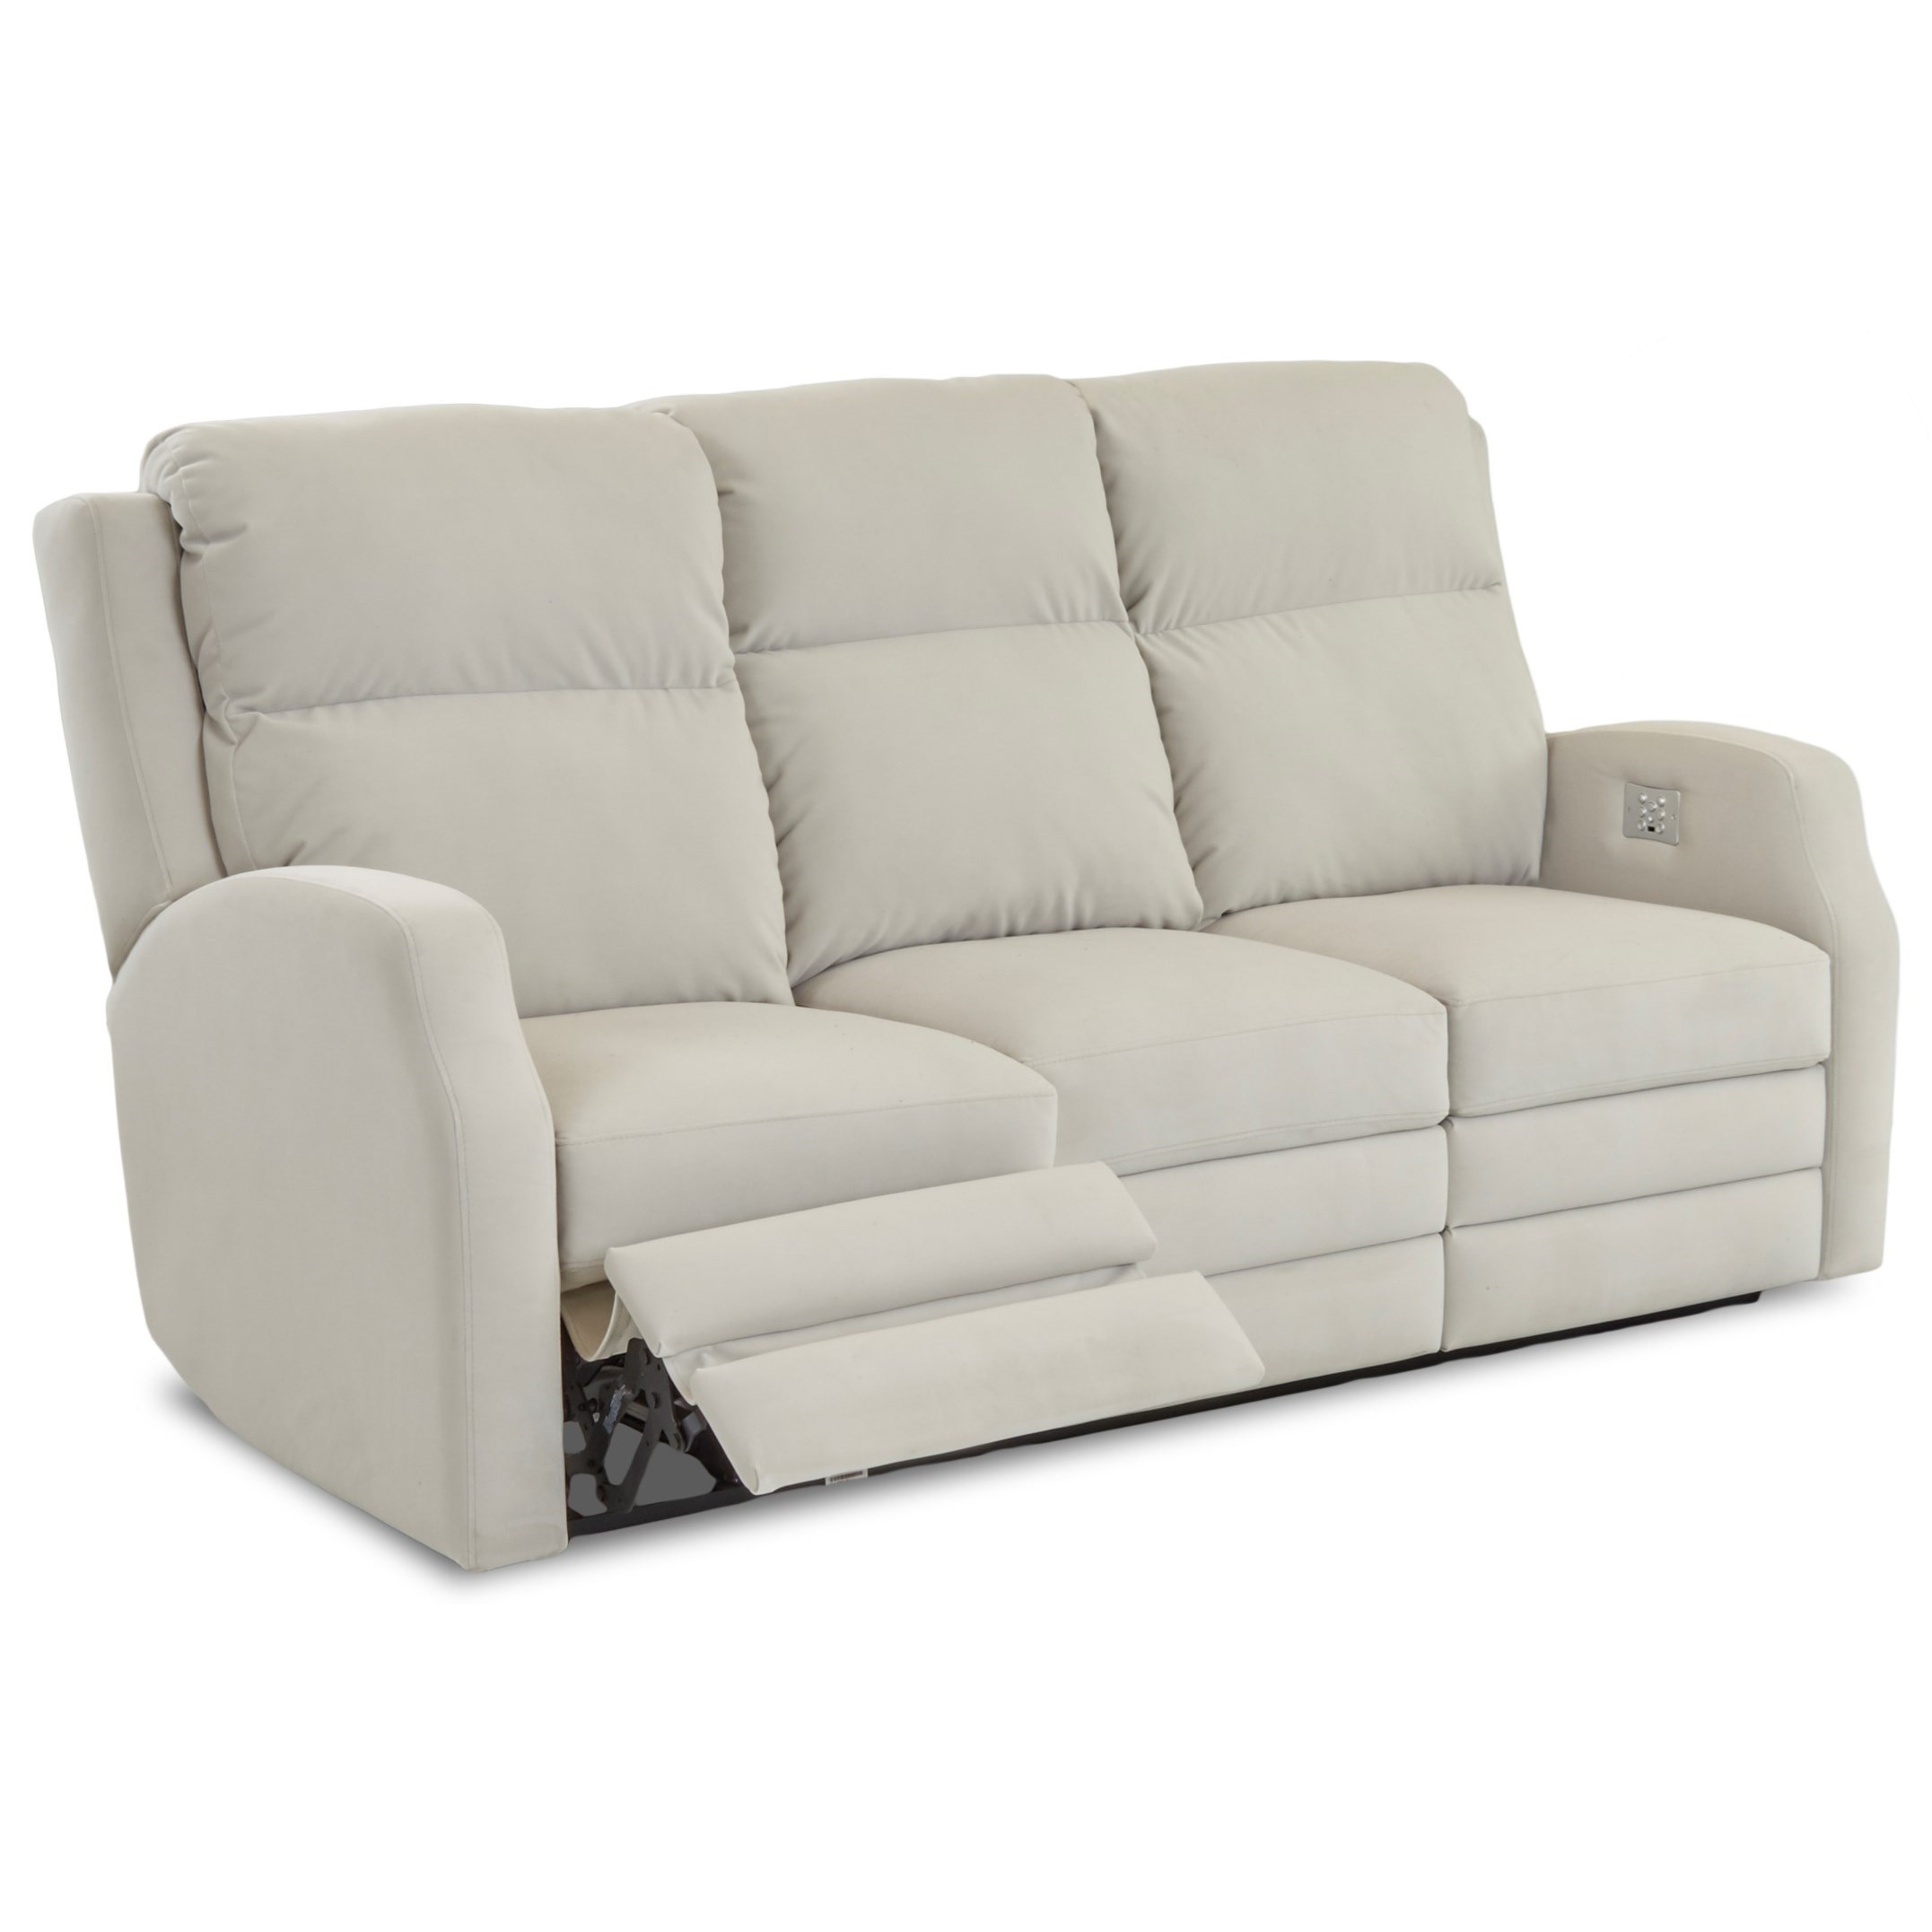 Klaussner Kamiah 77 Inch Power Reclining Sofa With Usb